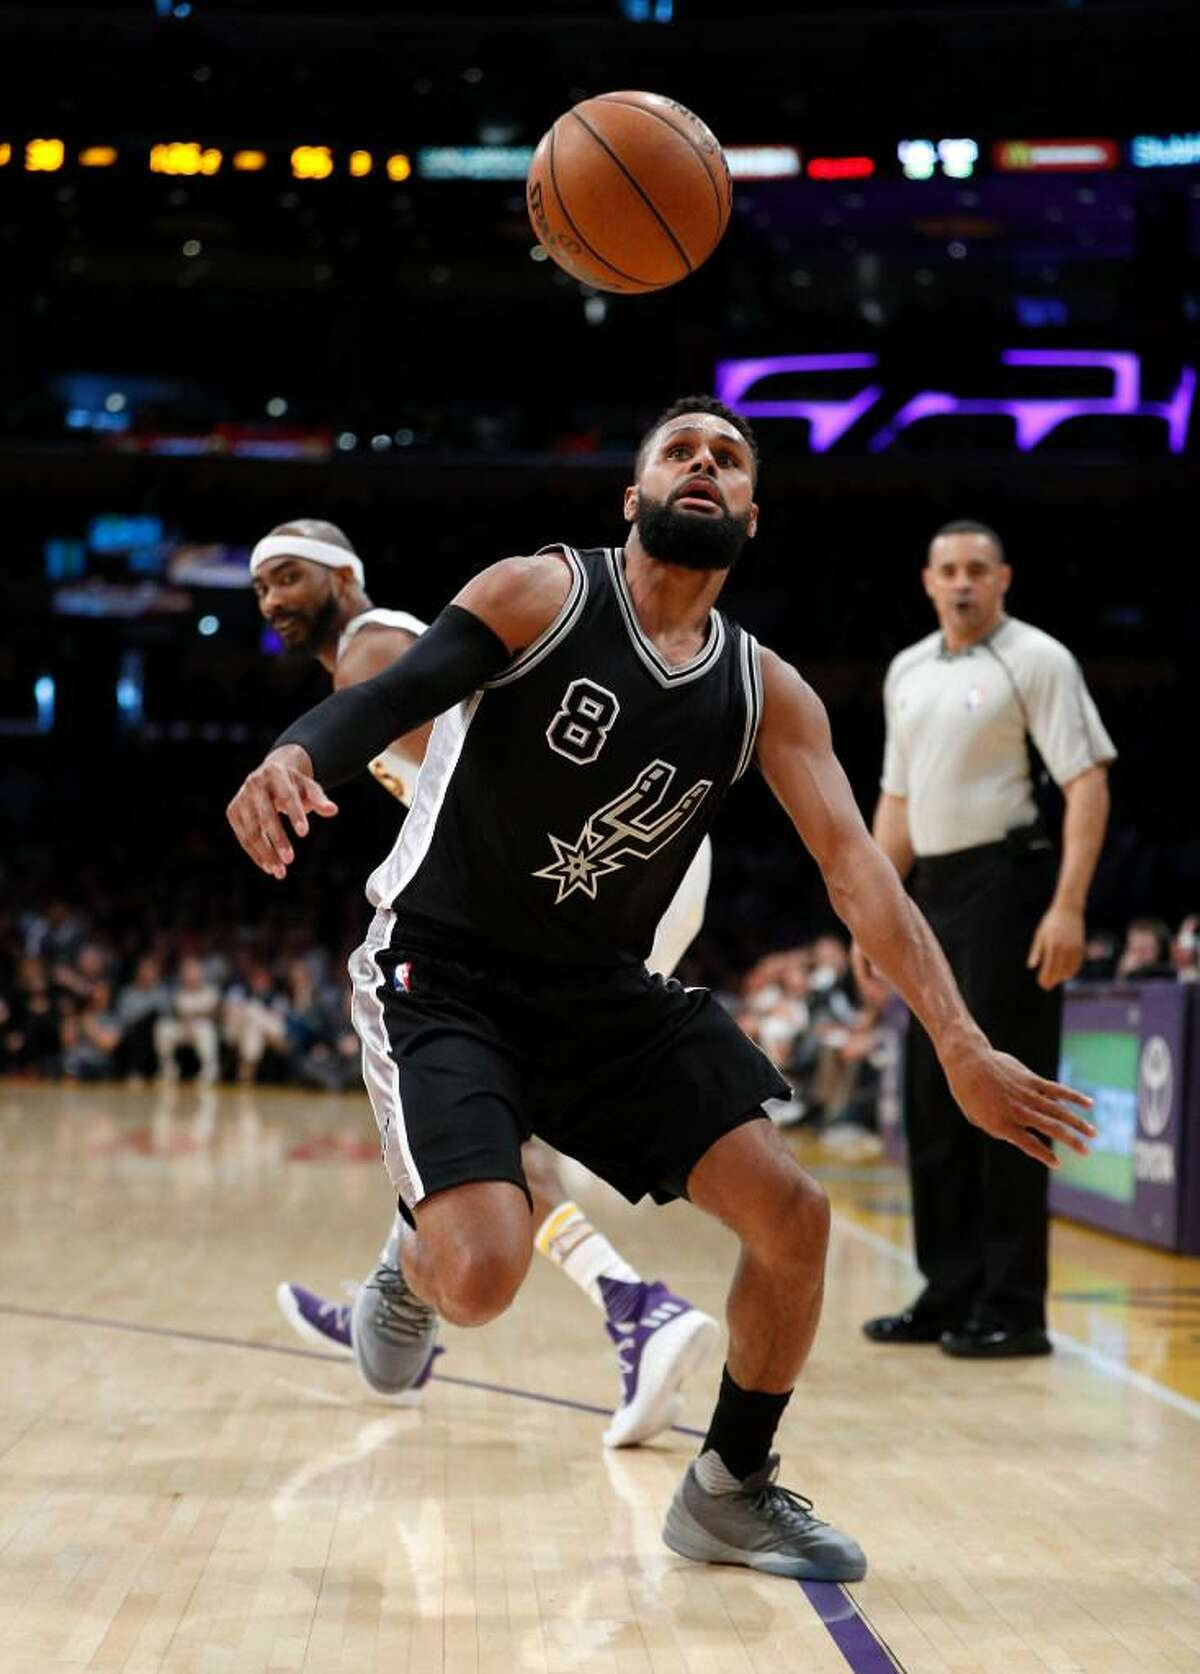 Spurs guard Patty Mills goes after the ball during San Antonio's 119-98 victory over the Los Angeles Lakers on Feb. 26, 2017, in Los Angeles.